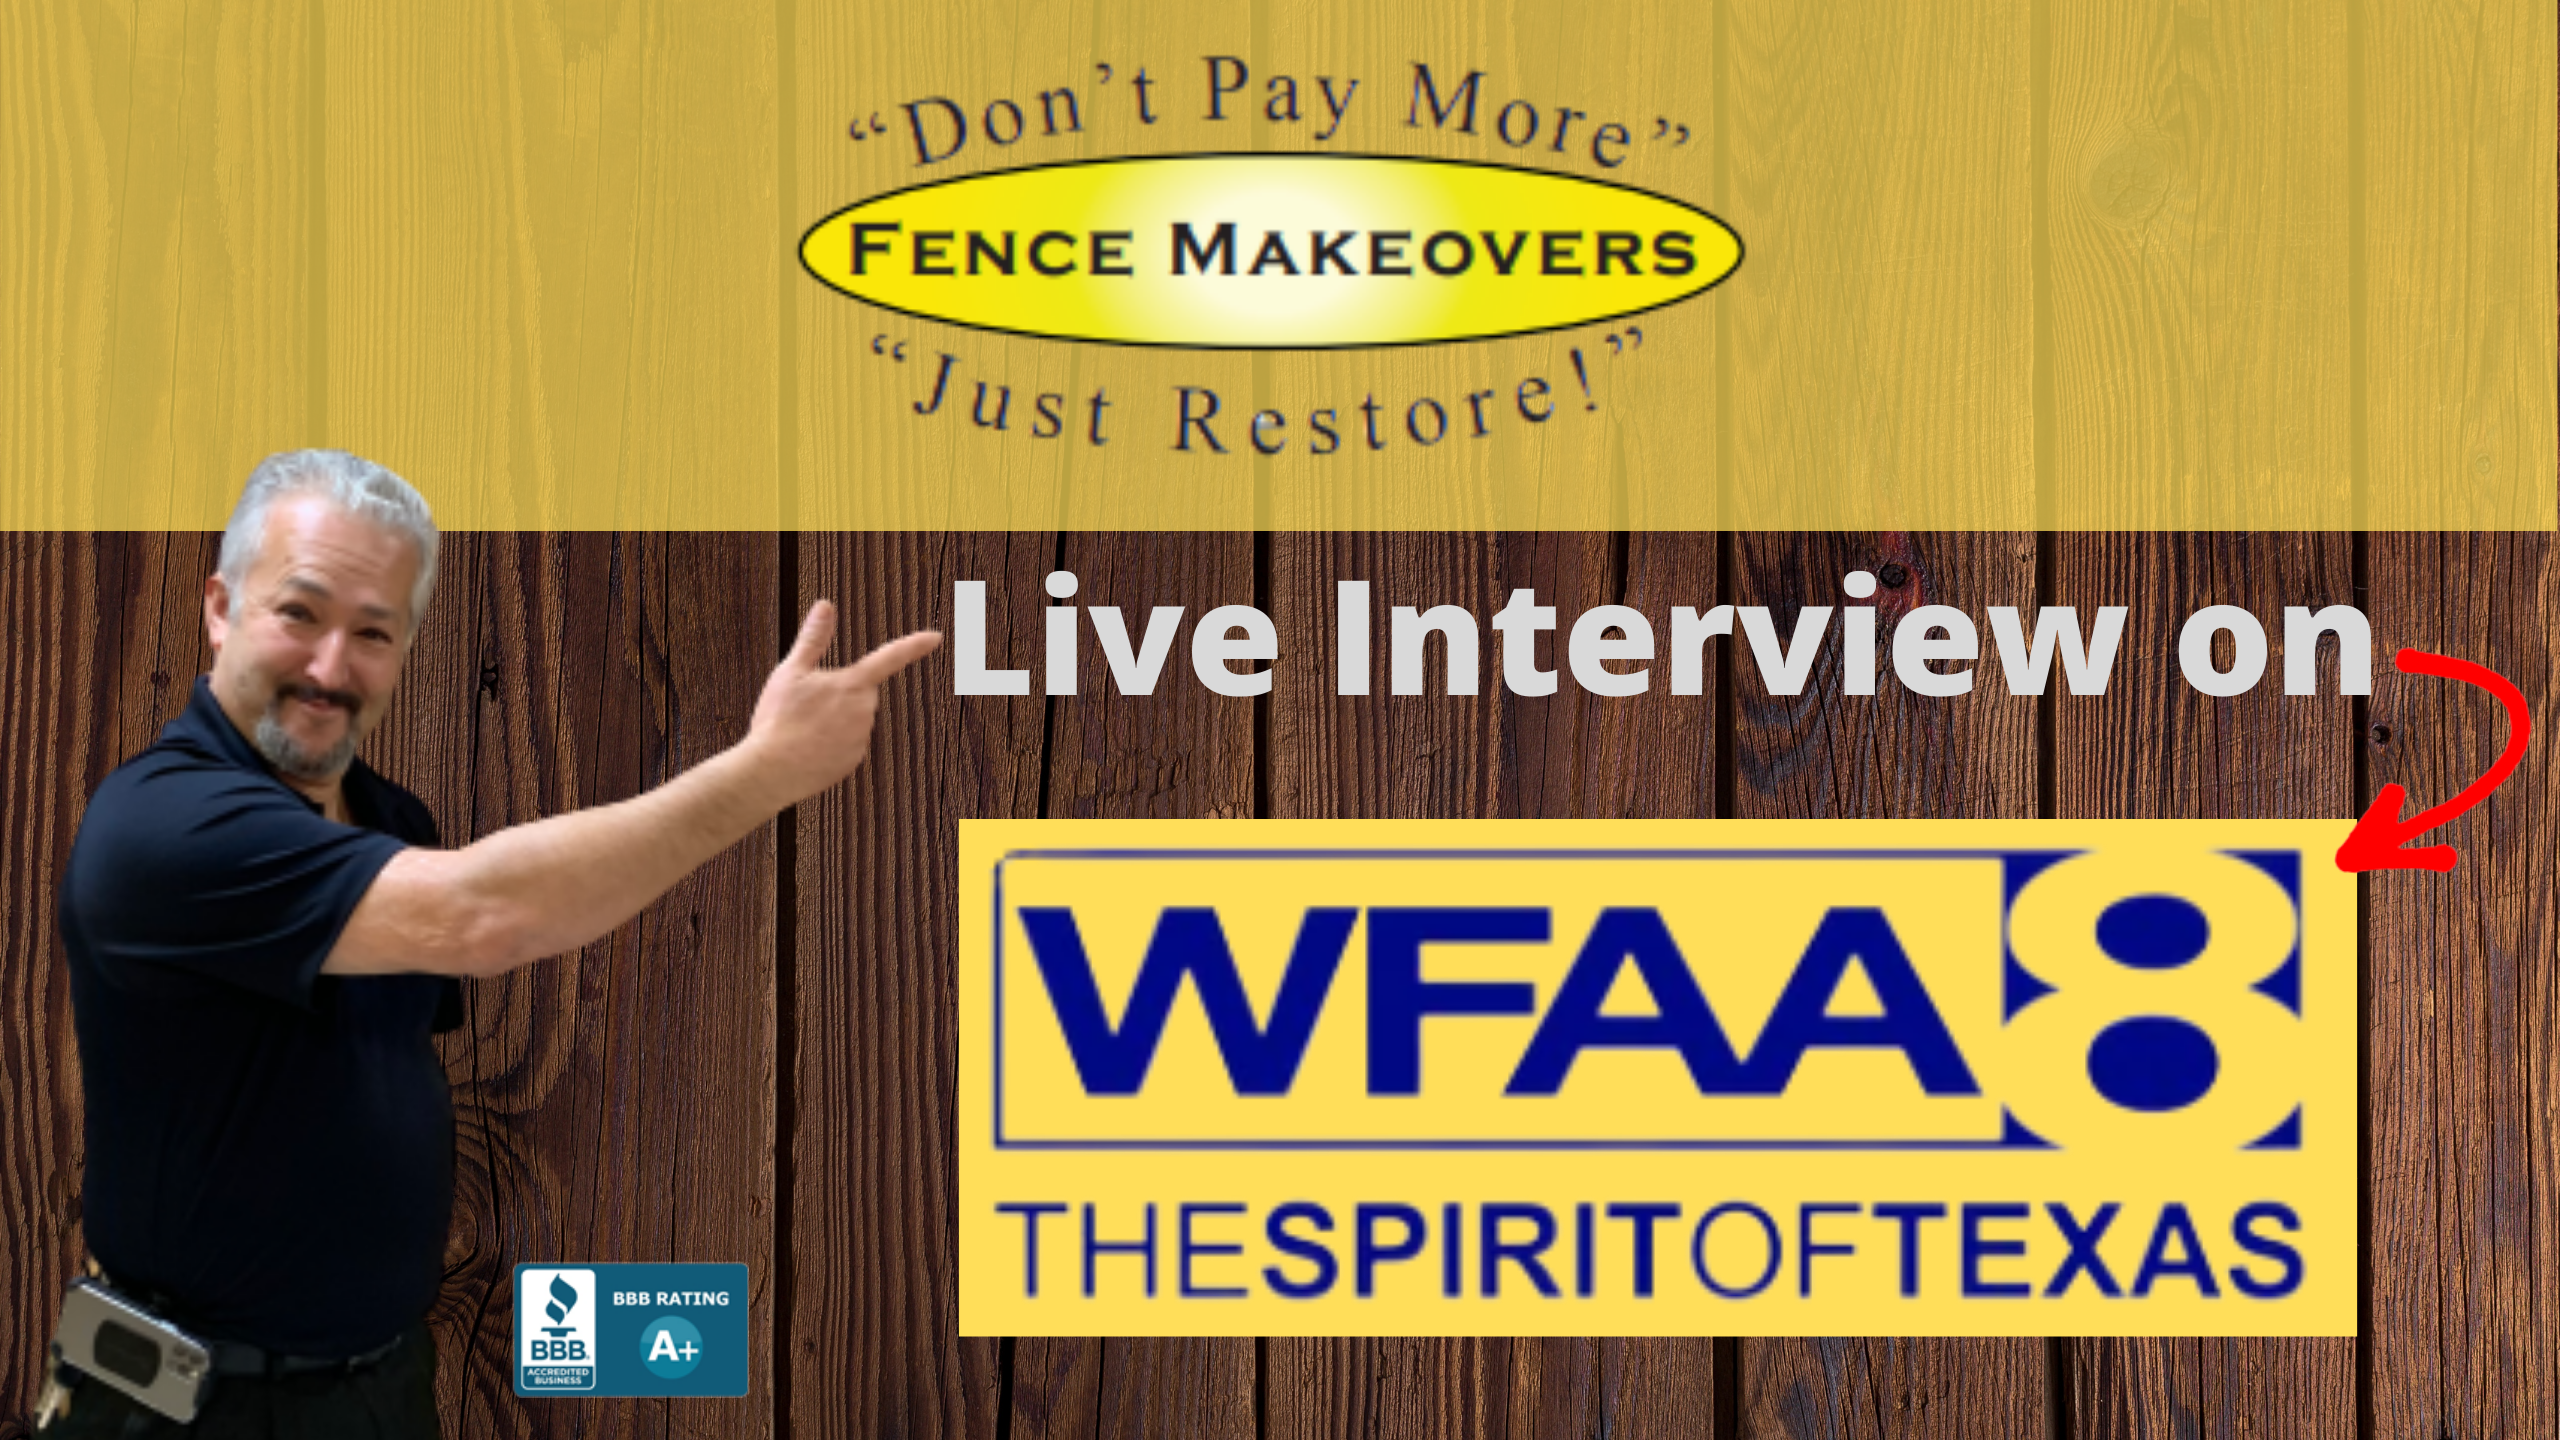 Fence Makeovers Channel 8 interview wind damage on fence